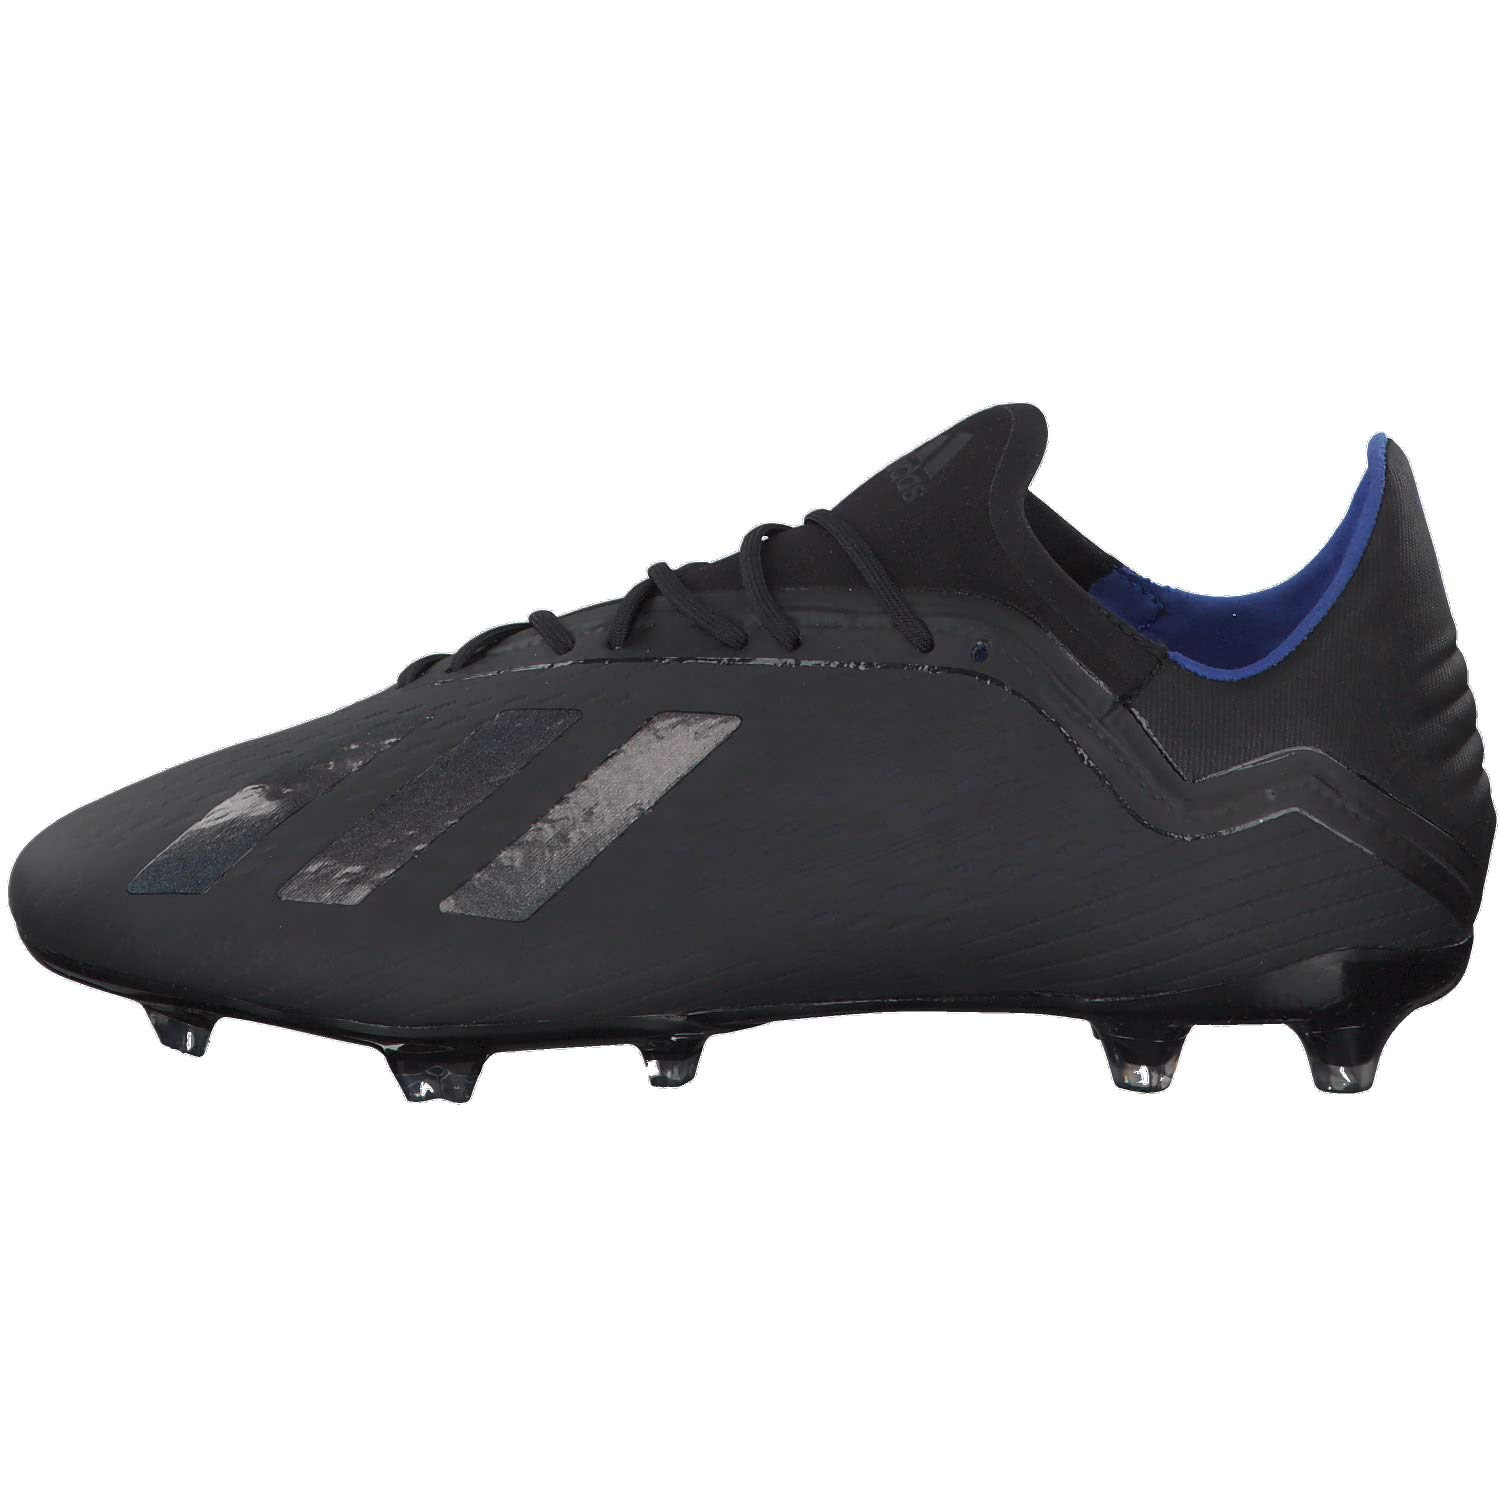 new style 75a67 b9b94 adidas Men's X 18.2 Fg Football Boots: Amazon.co.uk: Shoes ...